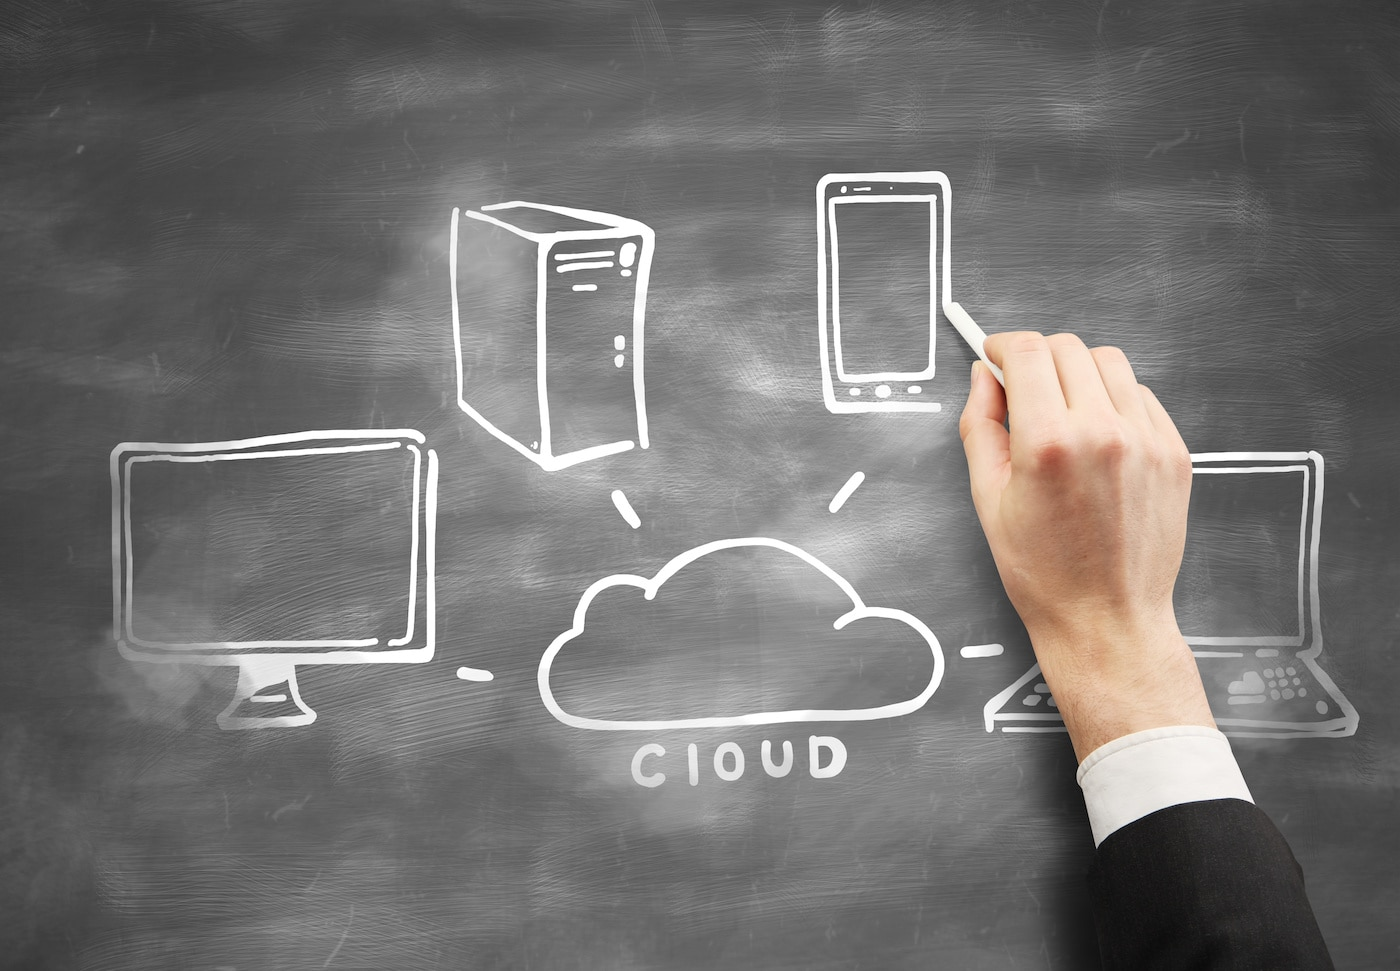 Cloud backup for your wedding photographs